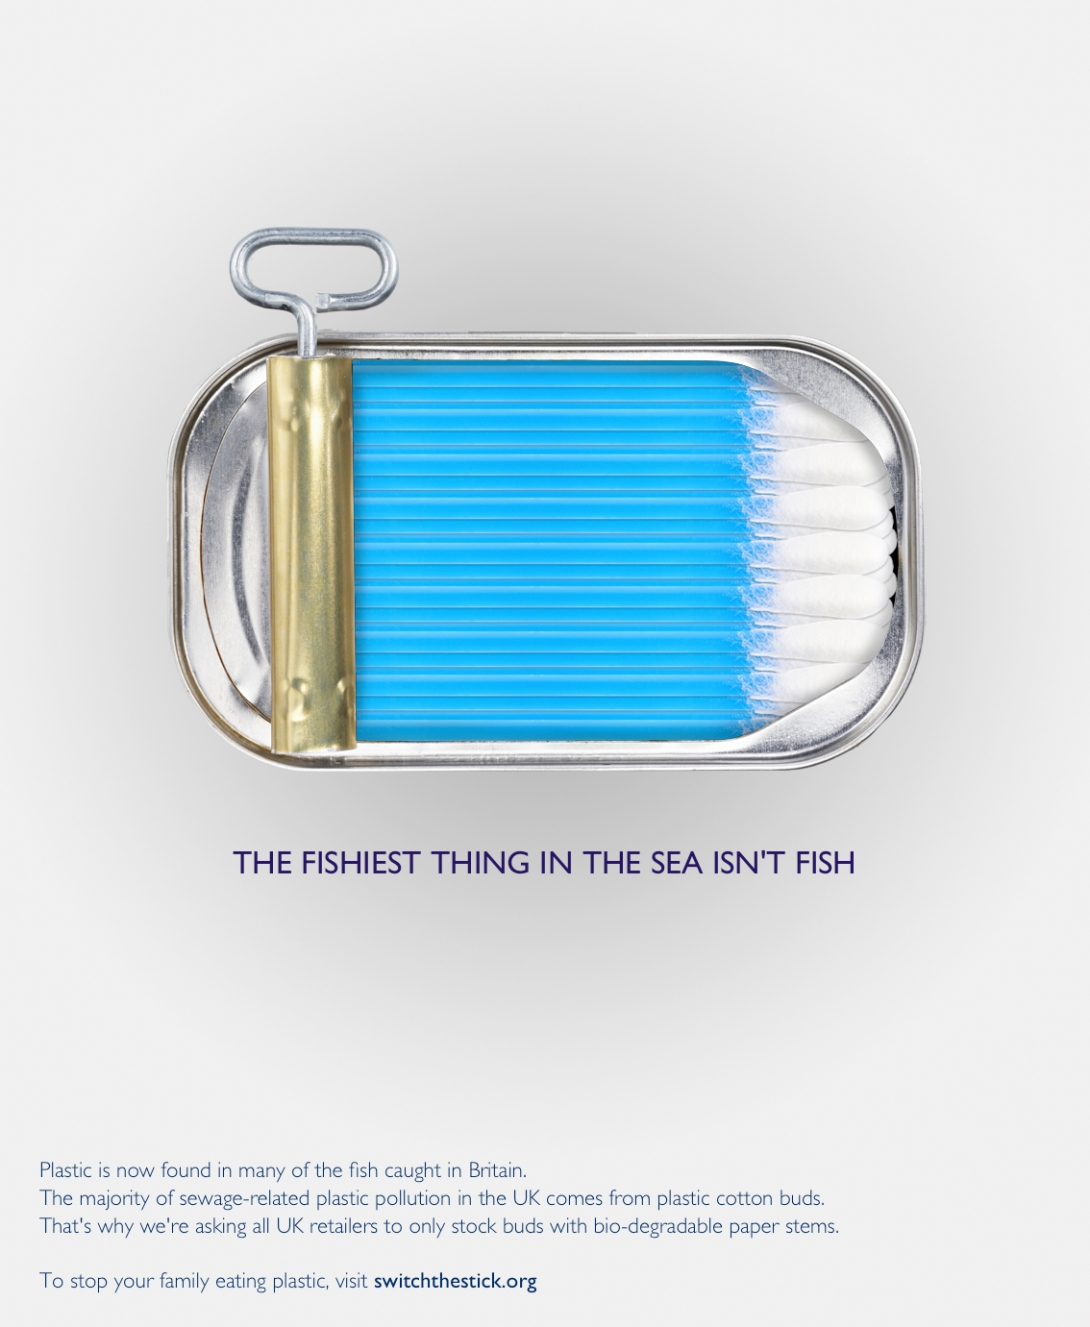 Ad idea to raise awareness of plastic pollution in the sea